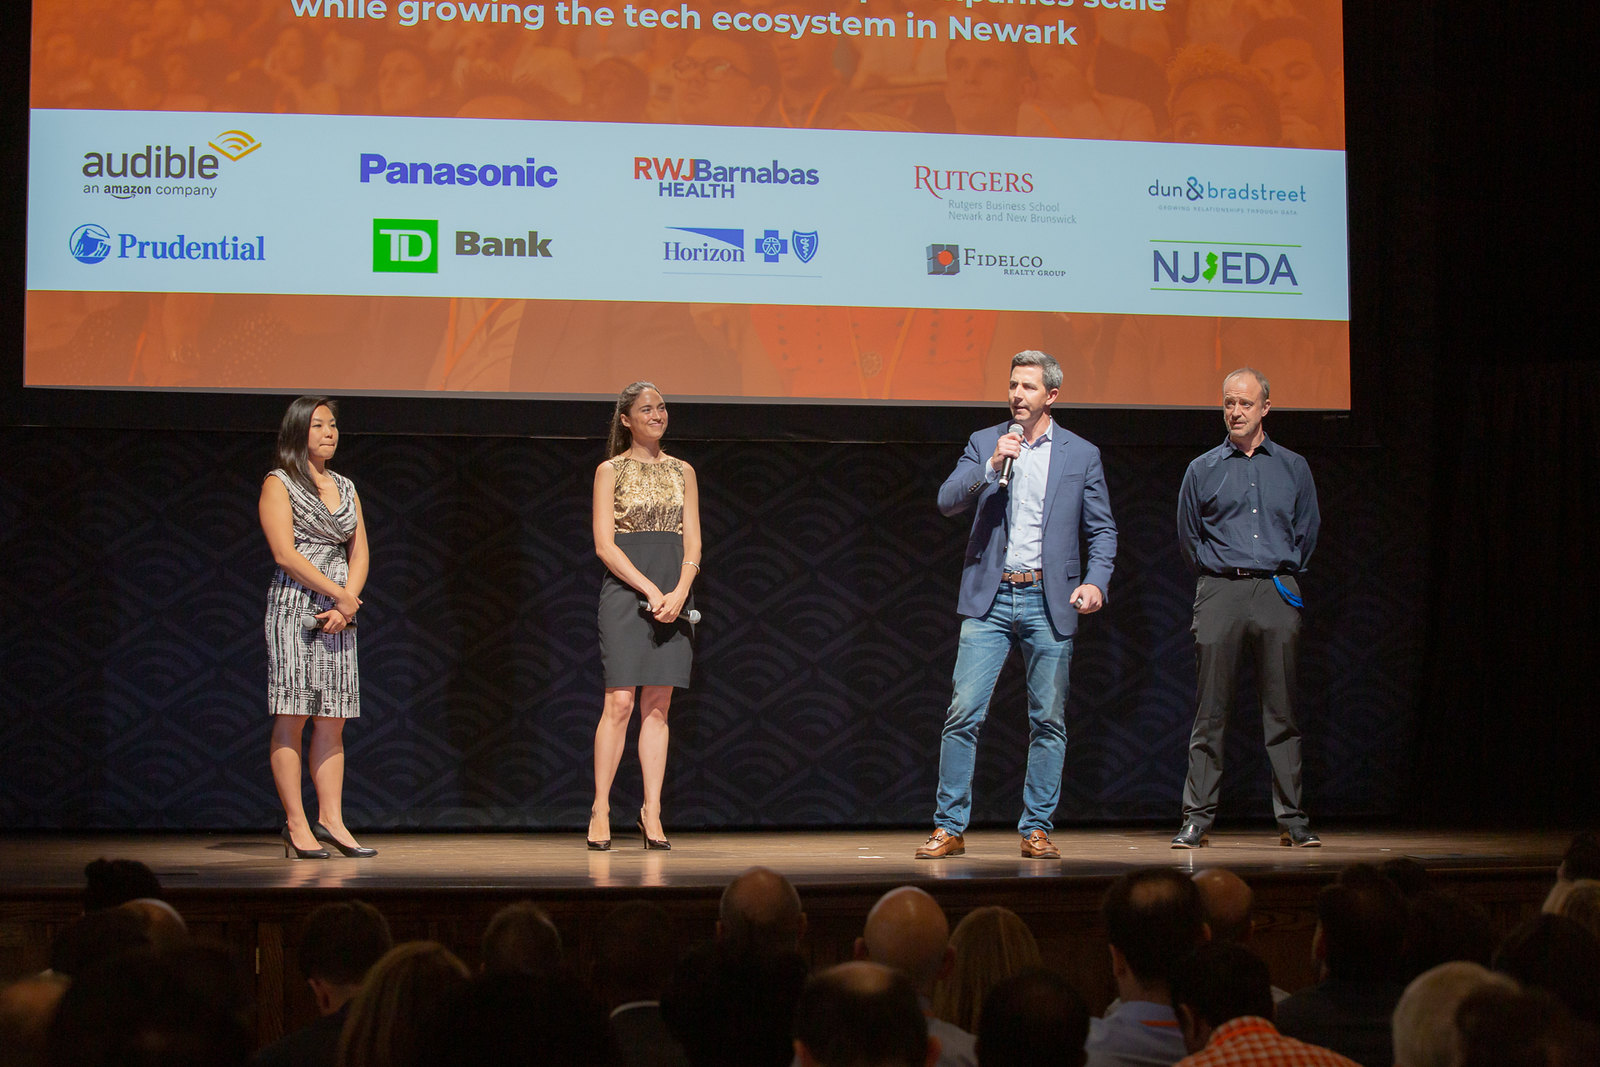 The NVPteam welcomes a crowd of founders, investors, corporate leaders and community stakeholders